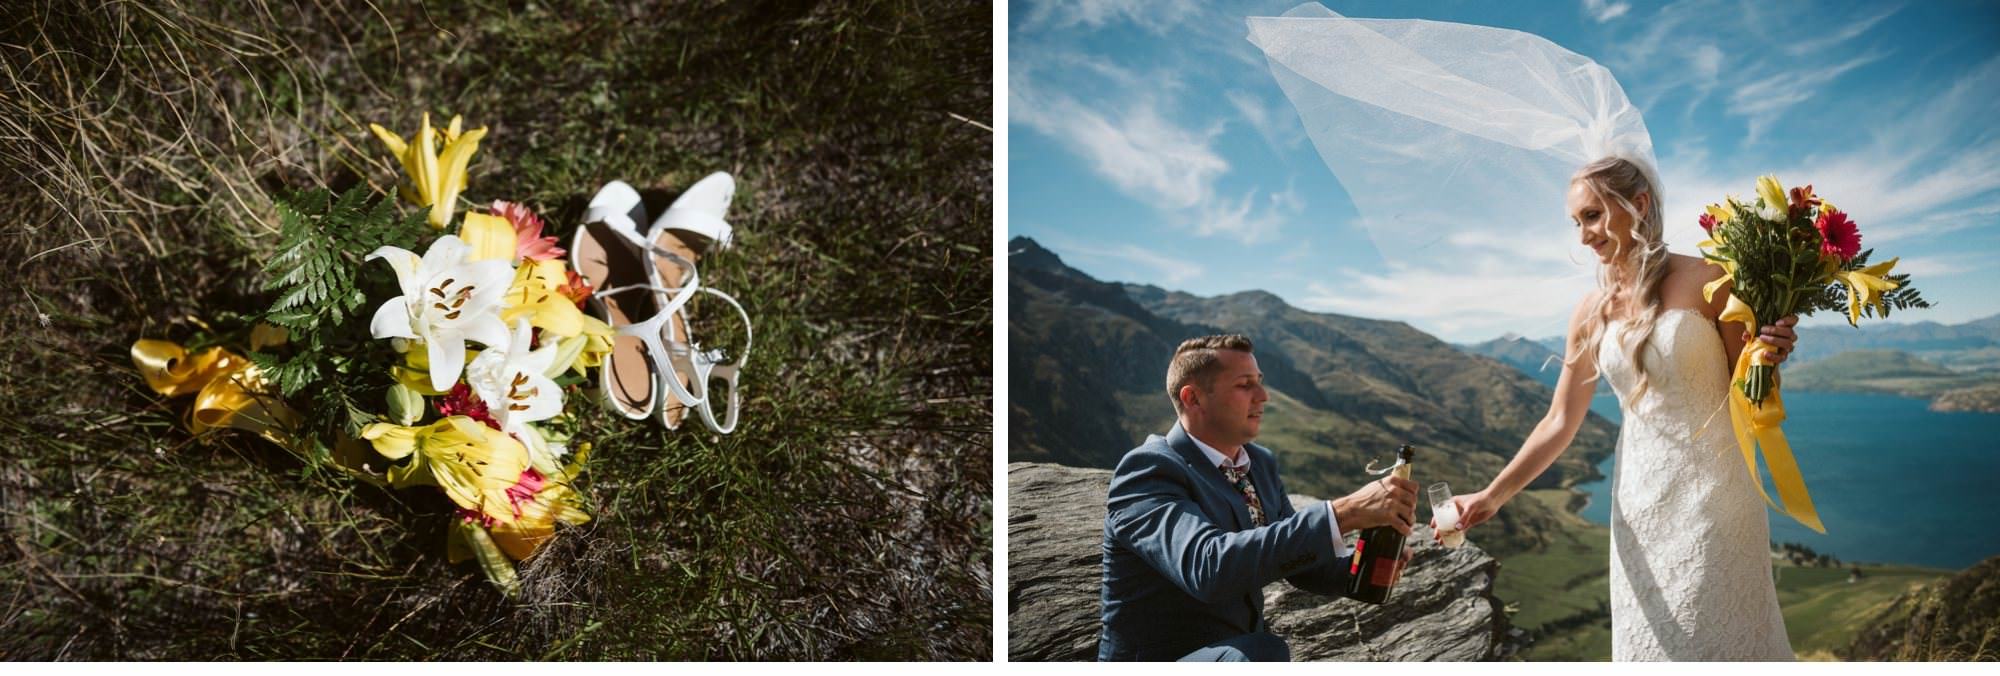 Queenstown Heli Elopement Photographer-013.jpg